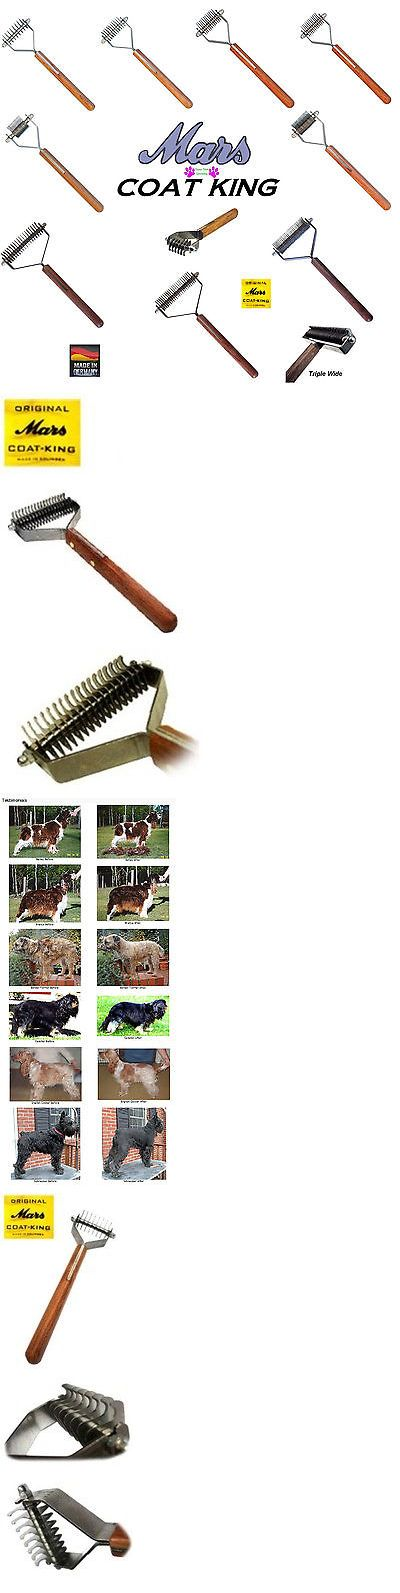 Brushes Combs and Rakes 46305: Mars Coat King Stripper Pet Animal Undercoat Hair Coat Stripping Tool Comb Rake -> BUY IT NOW ONLY: $88.34 on eBay!